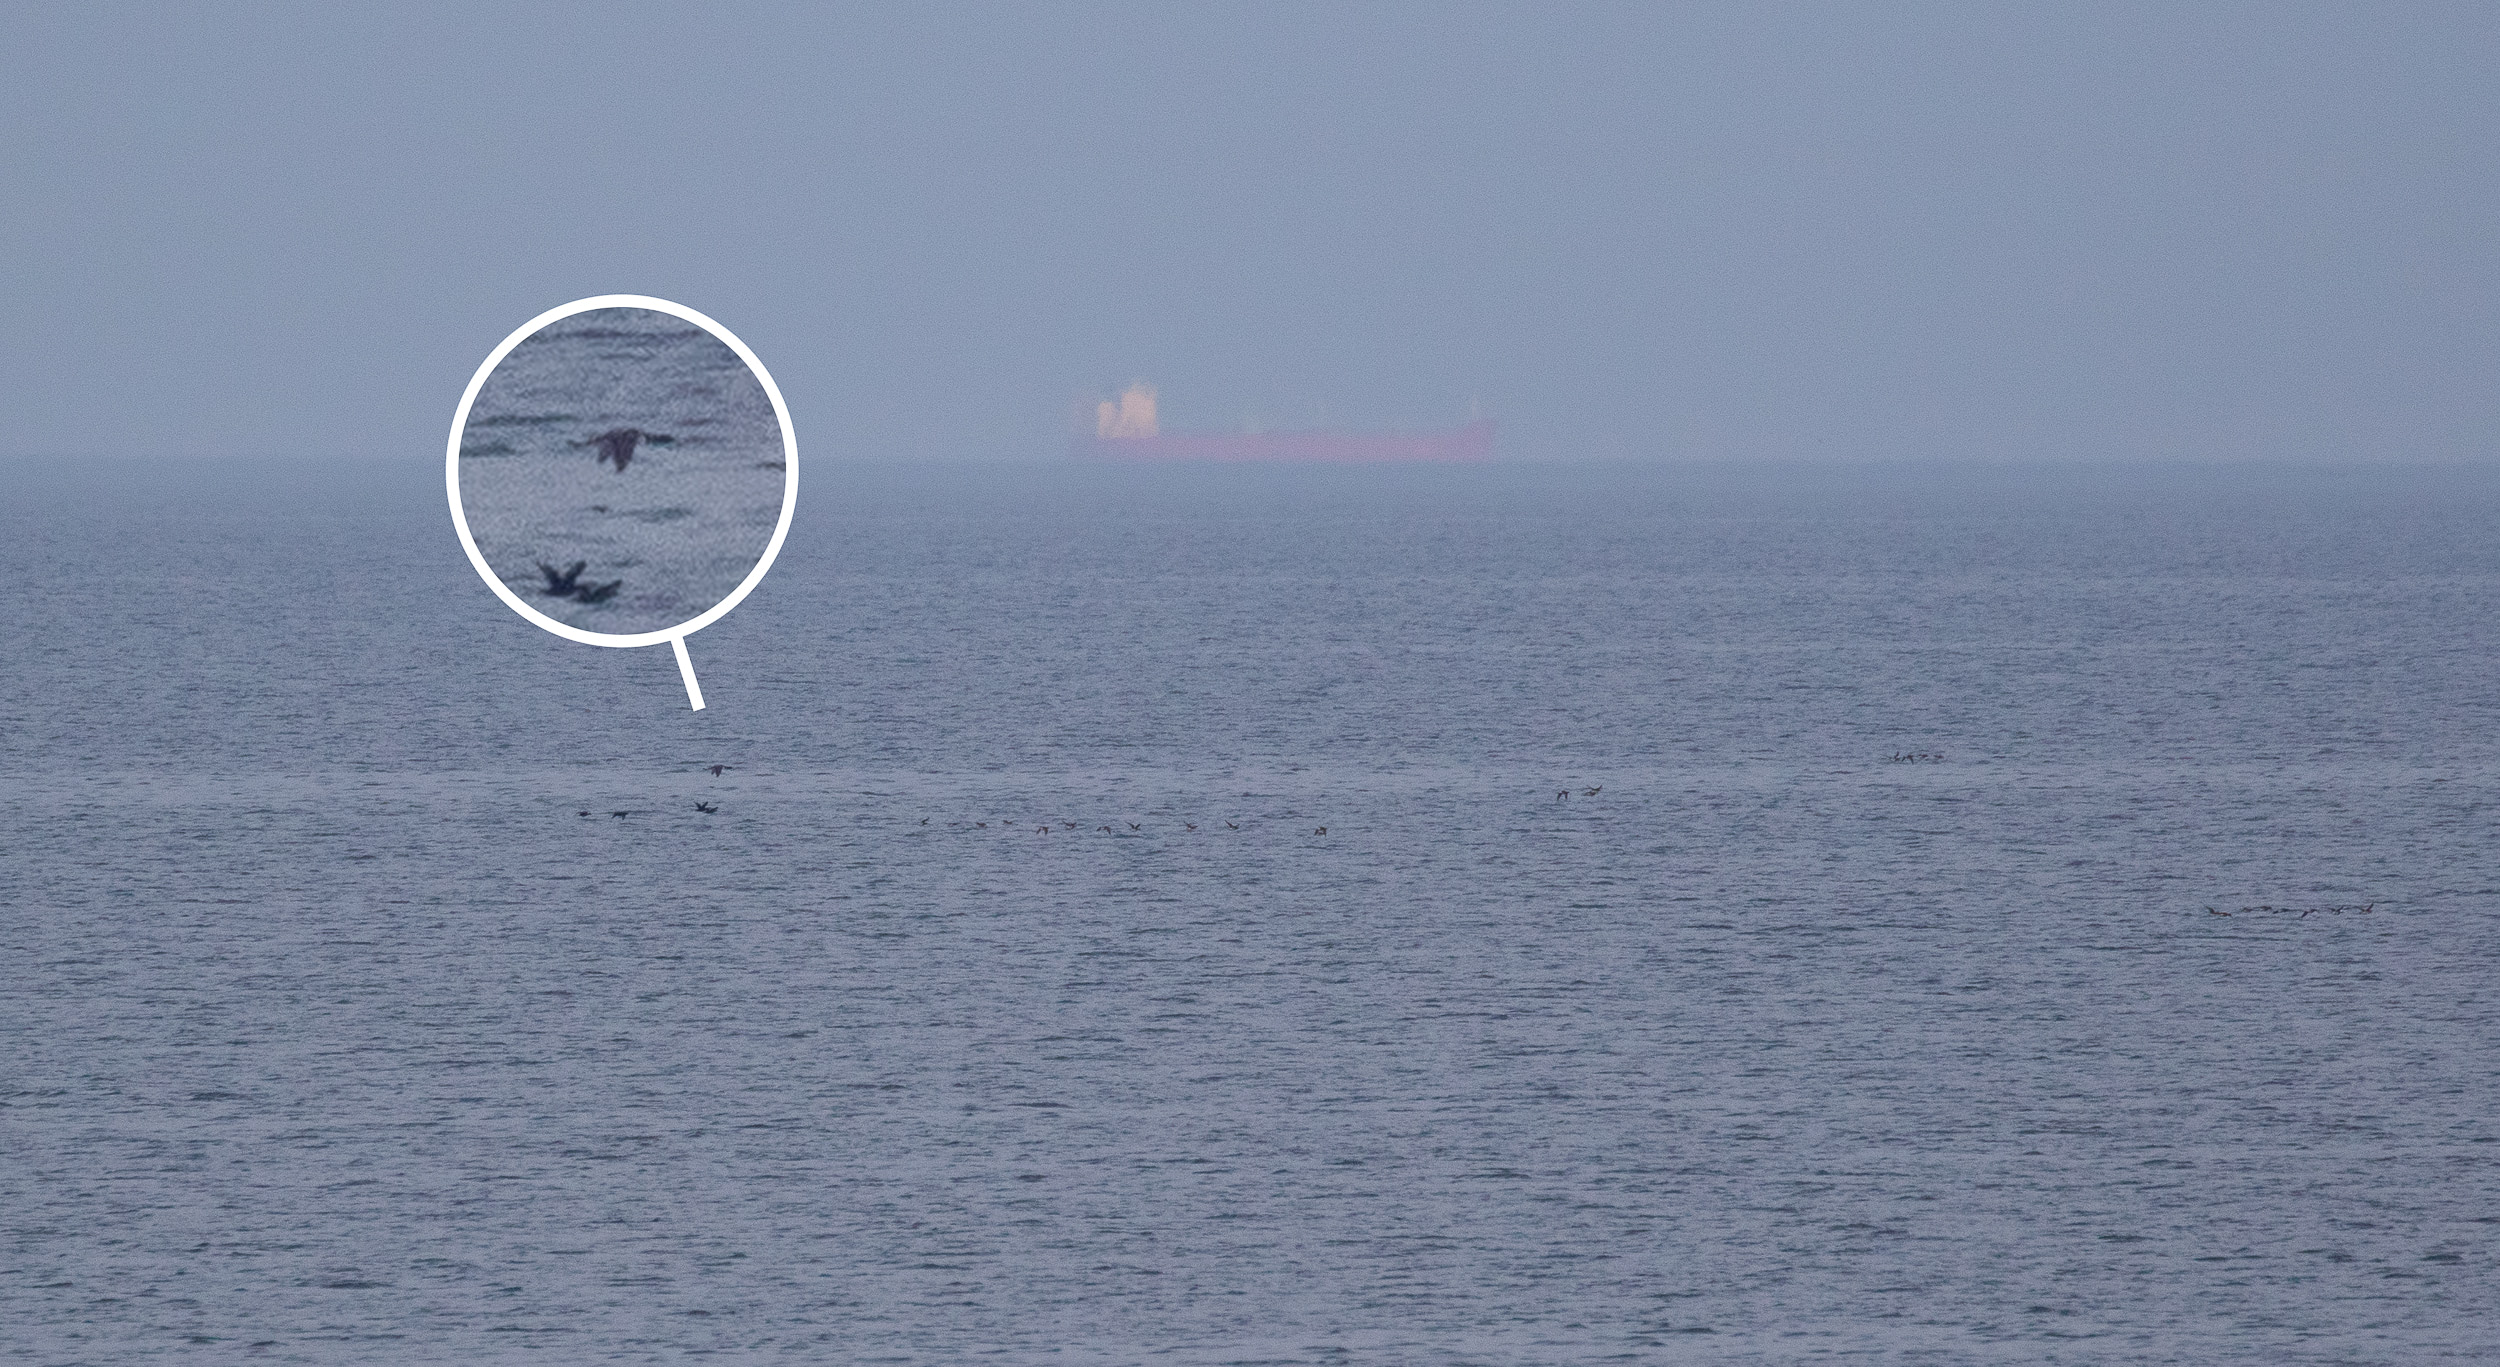 My first 'proper' Yellow-billed Diver. Great to see after an observation of a migrating individual in The Netherlands that left me very unsatisfied. In case you're wondering where the yellow bill went, that's a typical 'sign' you're looking at a YbD: it's very hard to see the bill against the sea.